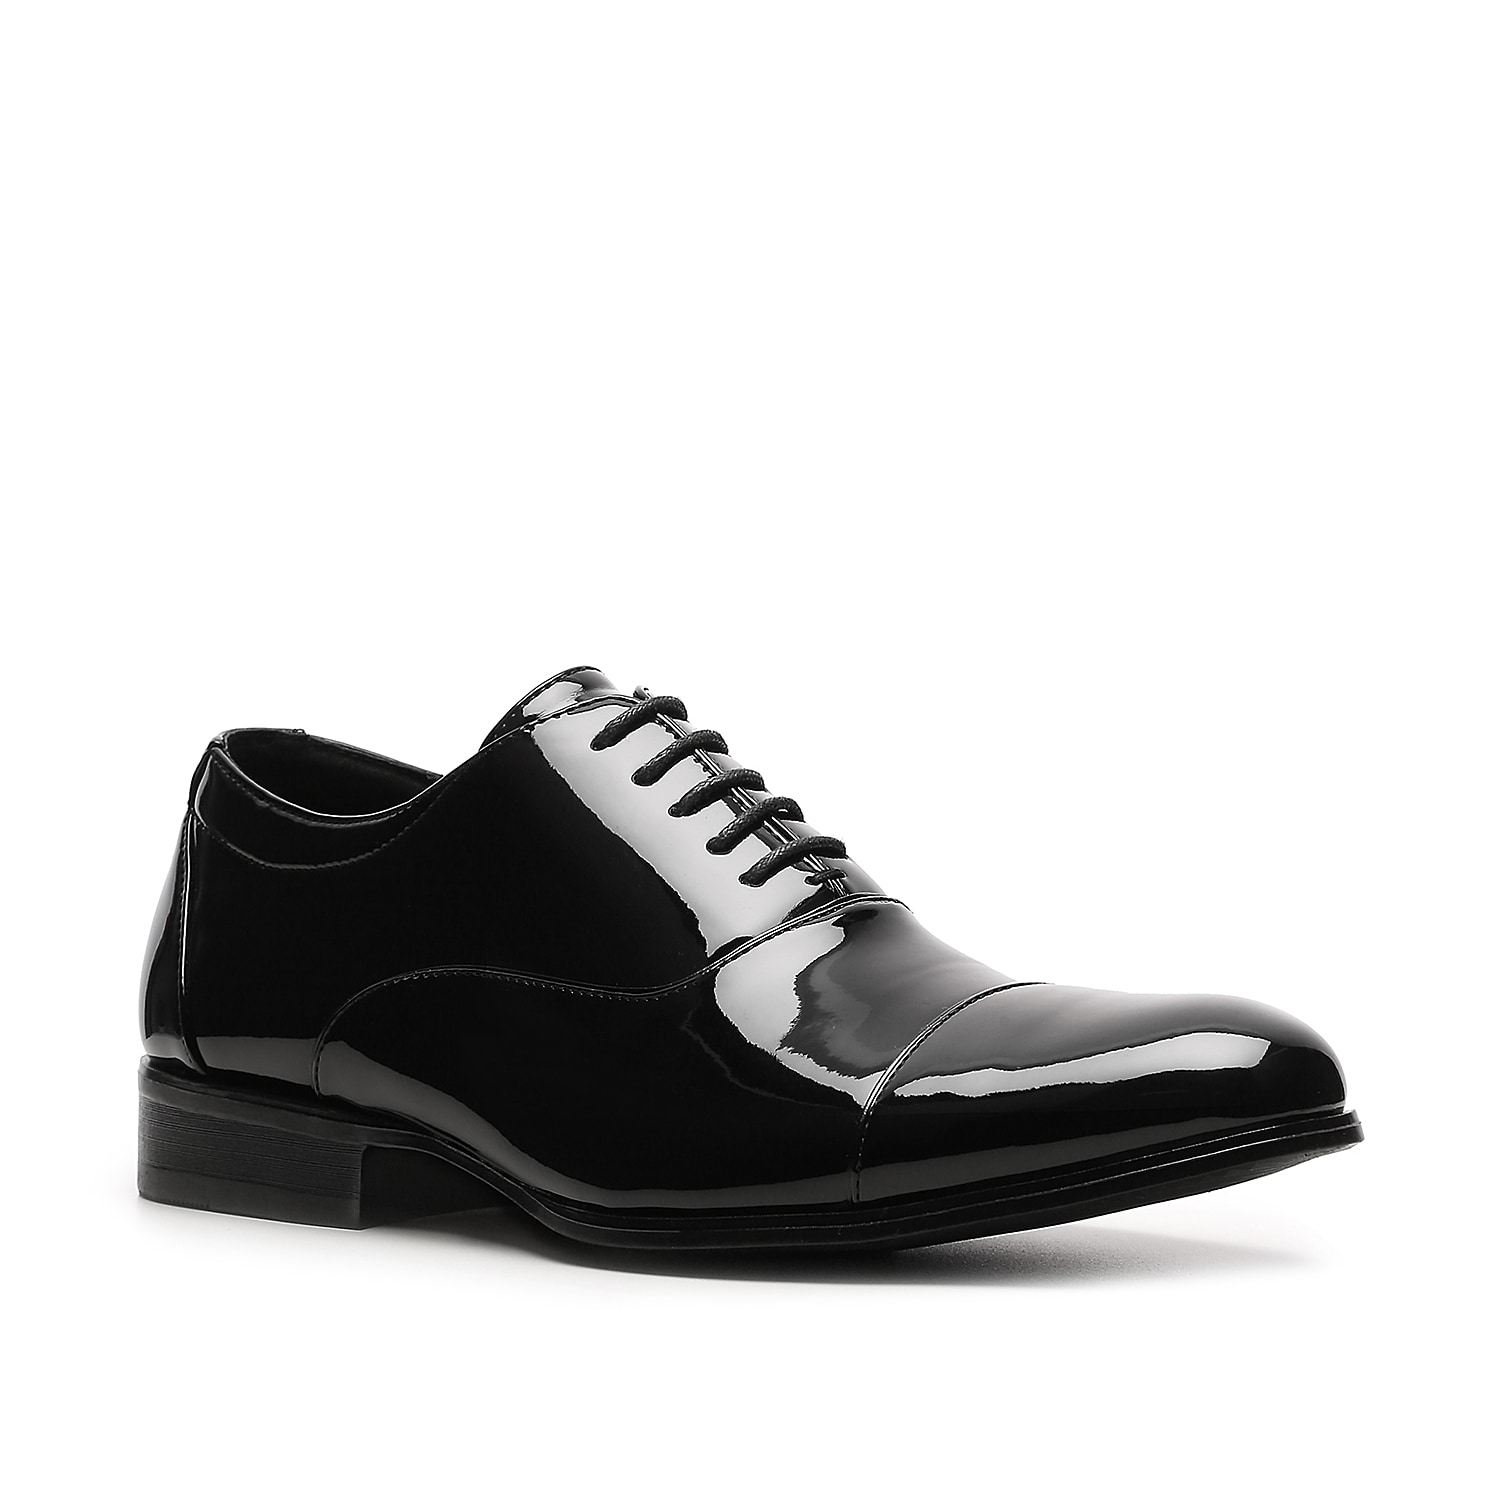 Dress up and stand out in extreme comfort when you wear the Stacy Adams Gala oxford. This patent leather tuxedo shoe has a memory foam footbed for superior cushioning all night long.